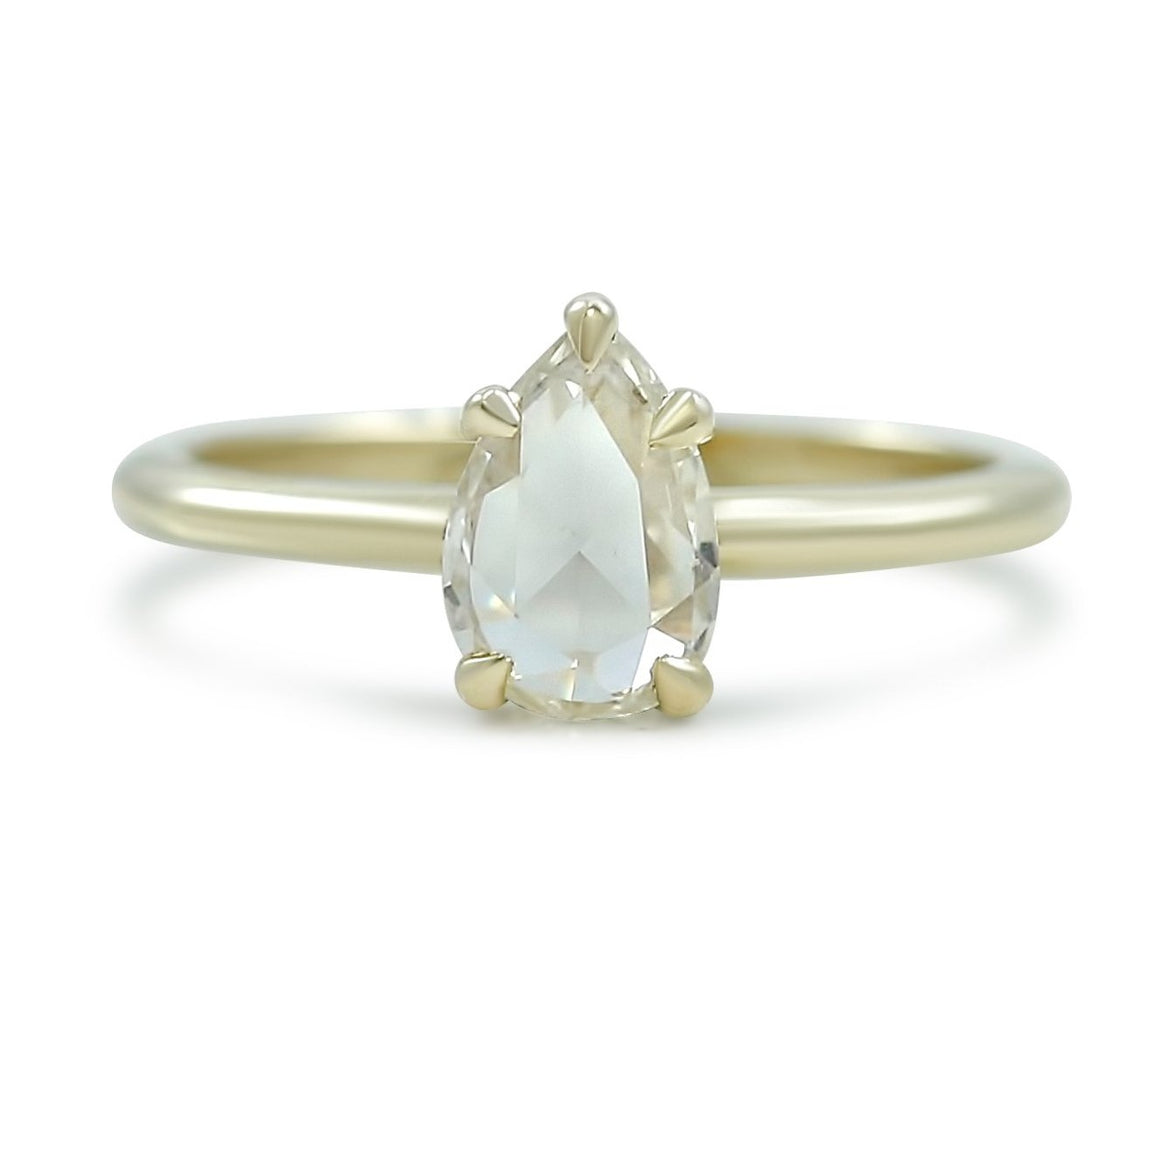 pear shaped rose cut low profile diamond engagement ring with a thin yellow gold band